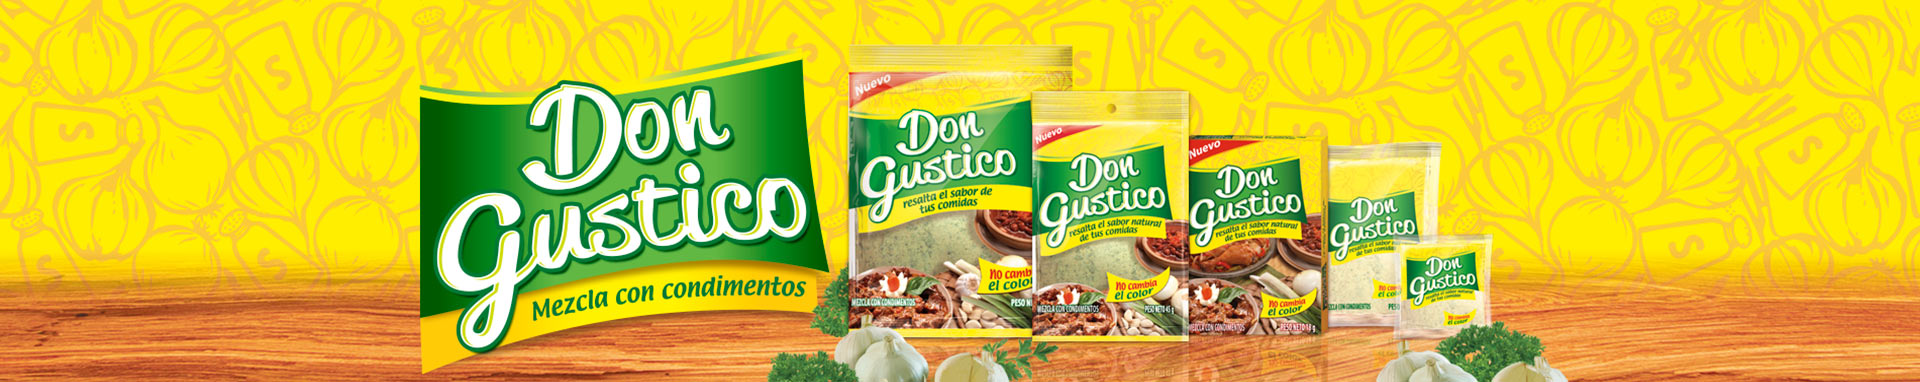 Banners_donGustico